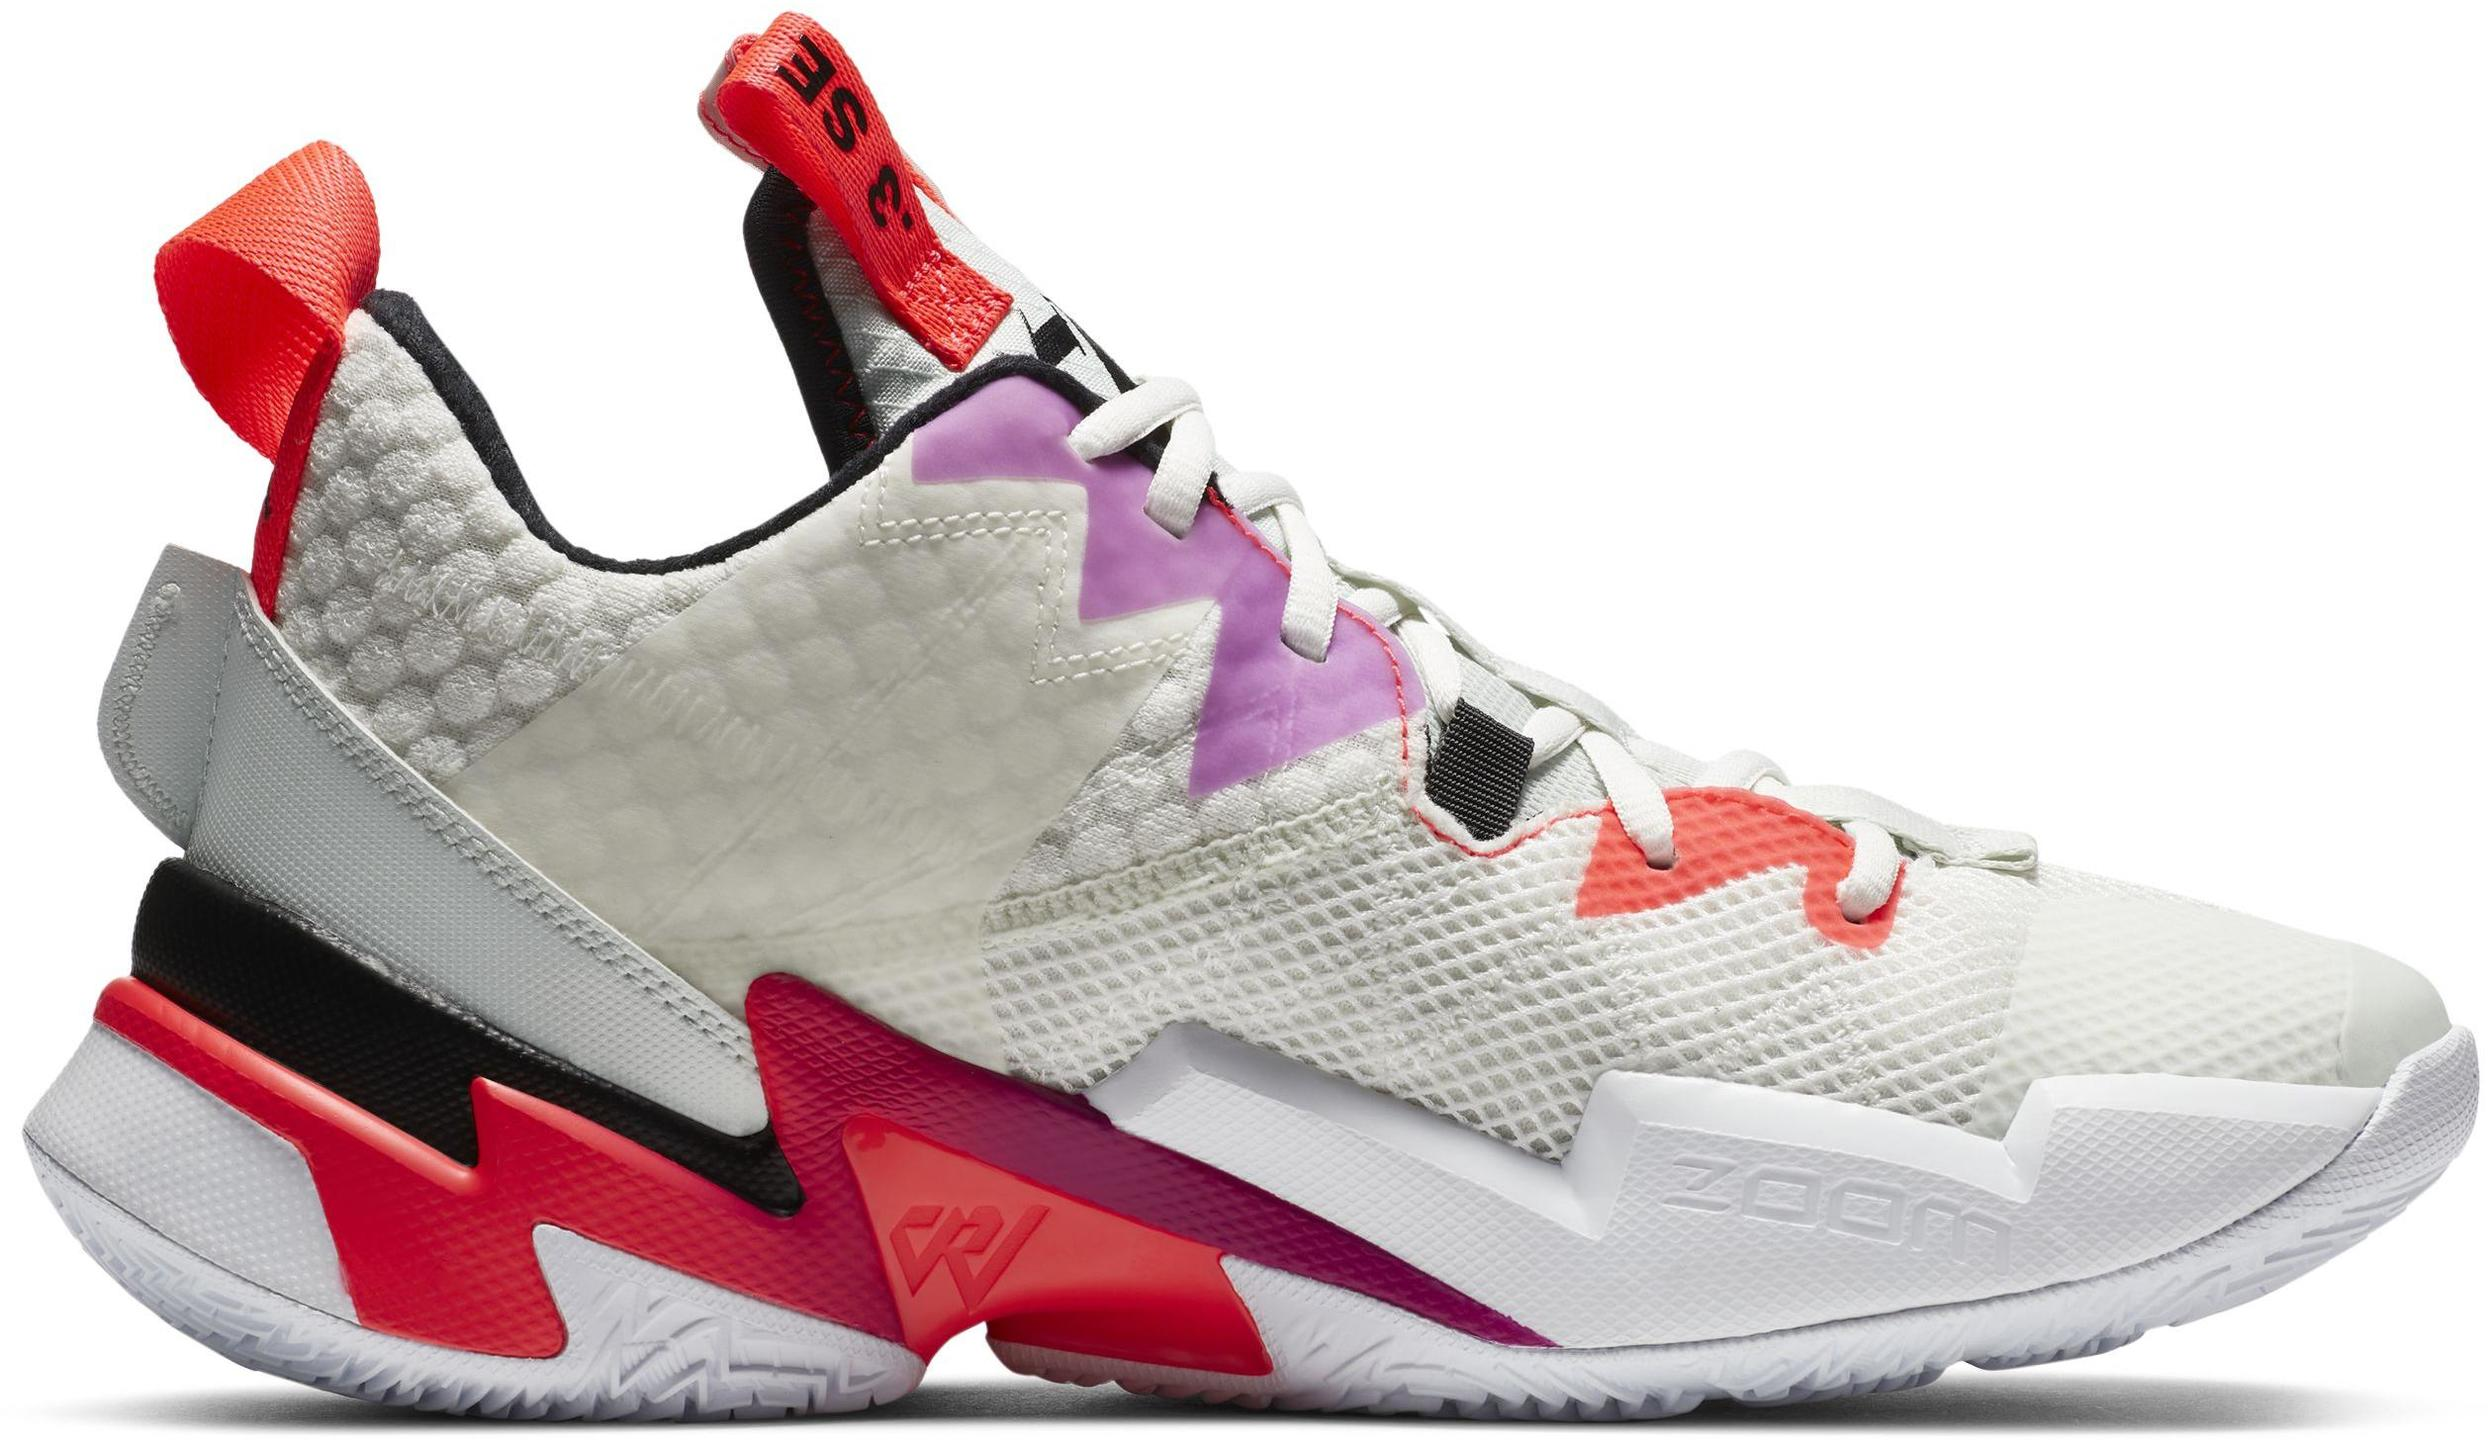 Jordan Why Not Zer0.3 SE Sail/Spruce Aura/Flash Crimson/Black